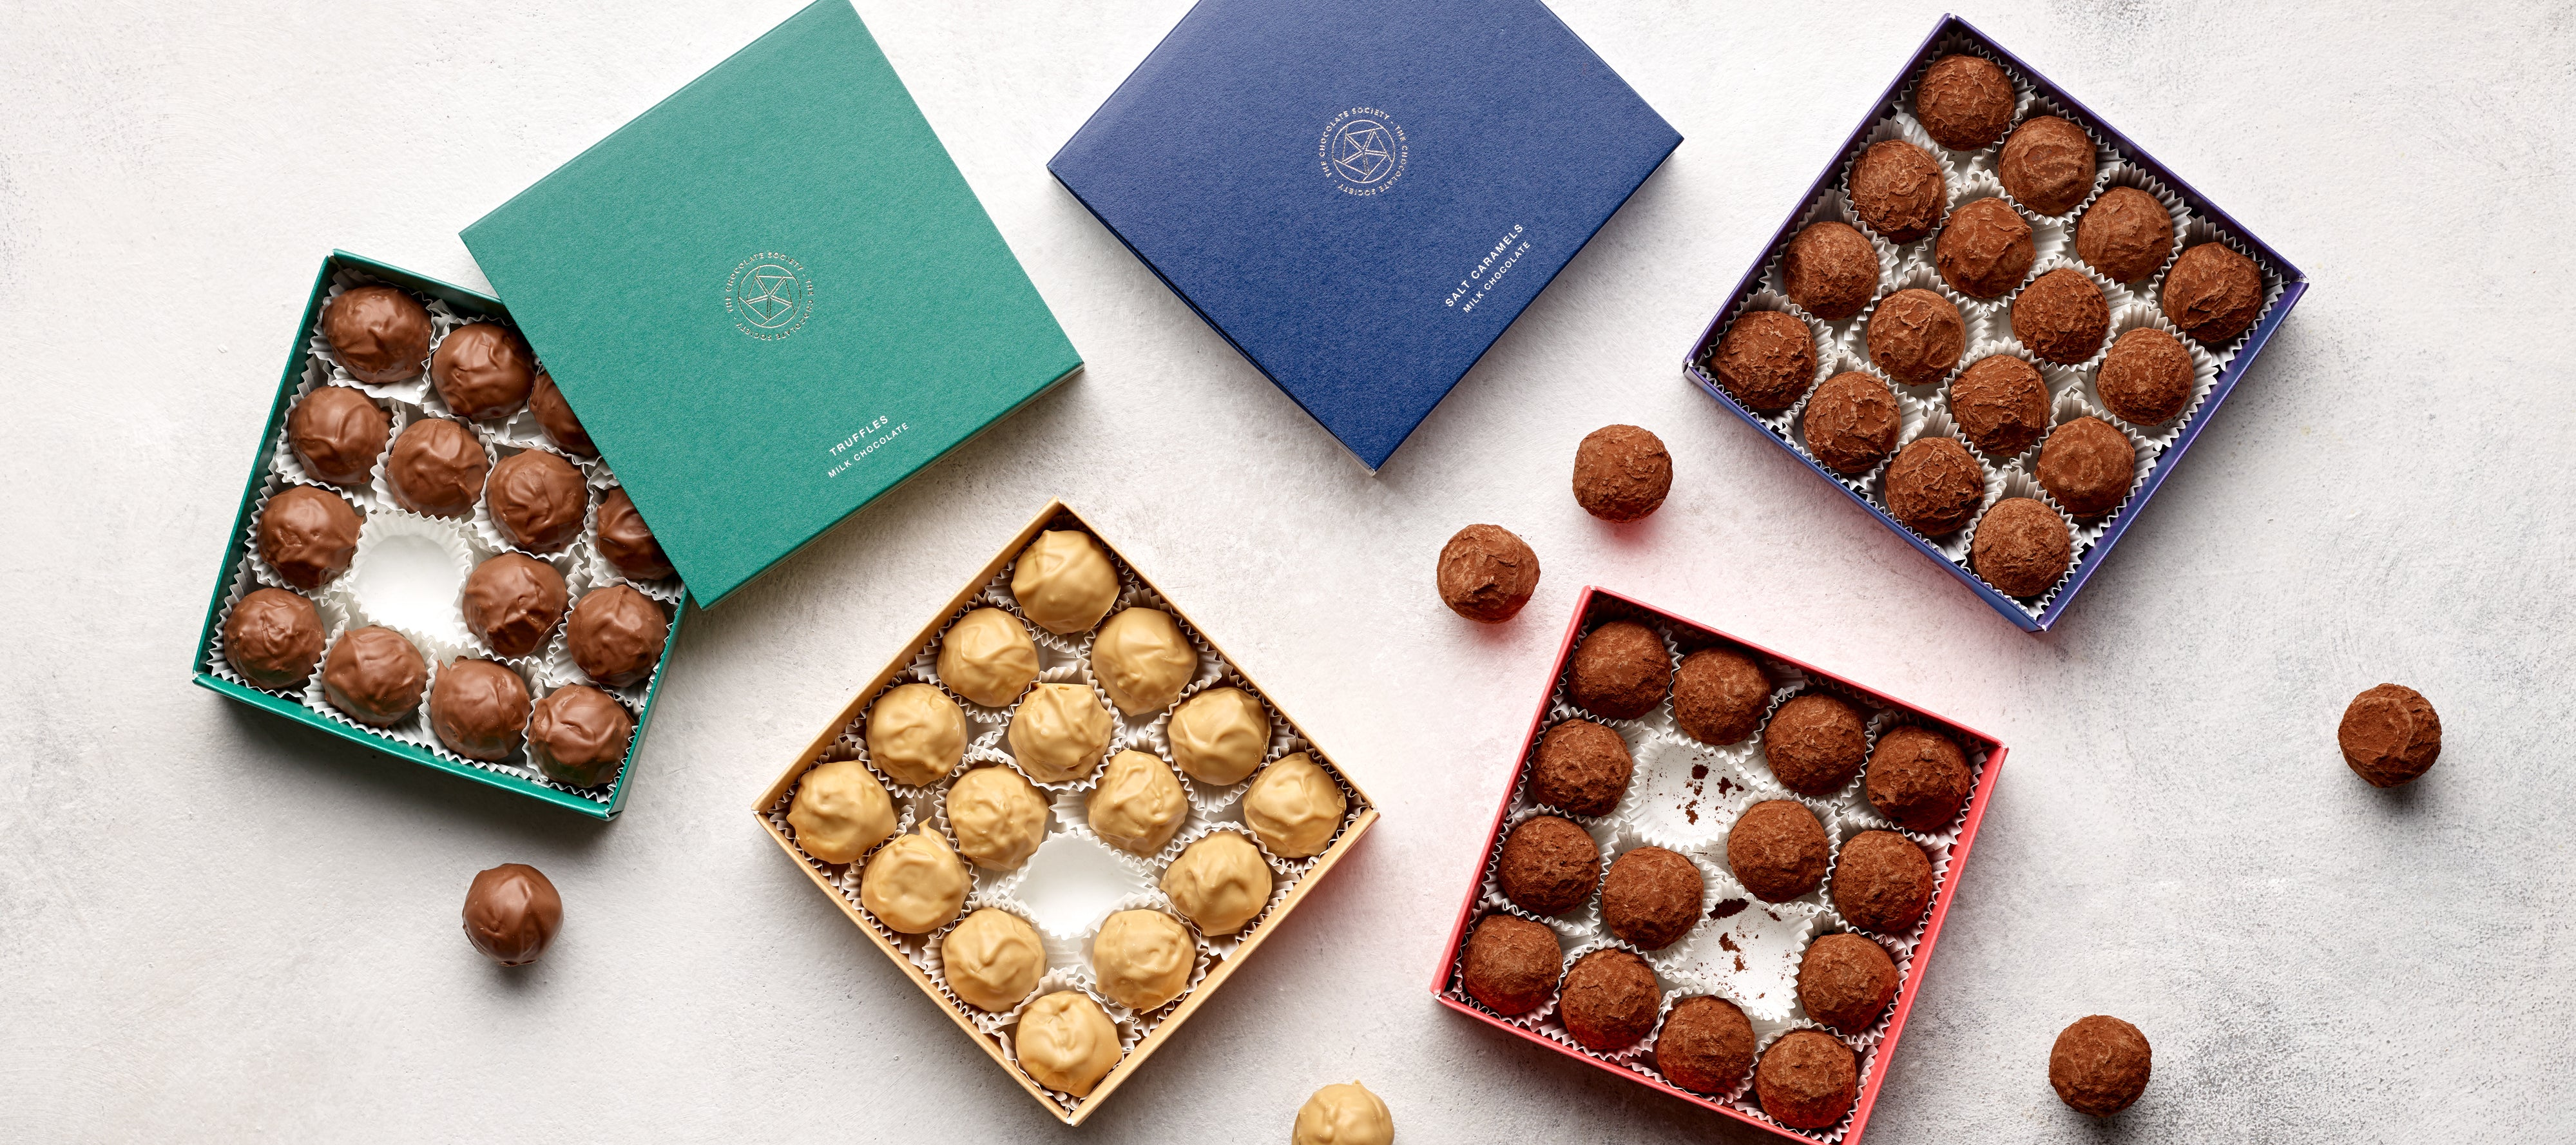 Buy Luxury Artisan Chocolate Gifts From The Chocolate Society